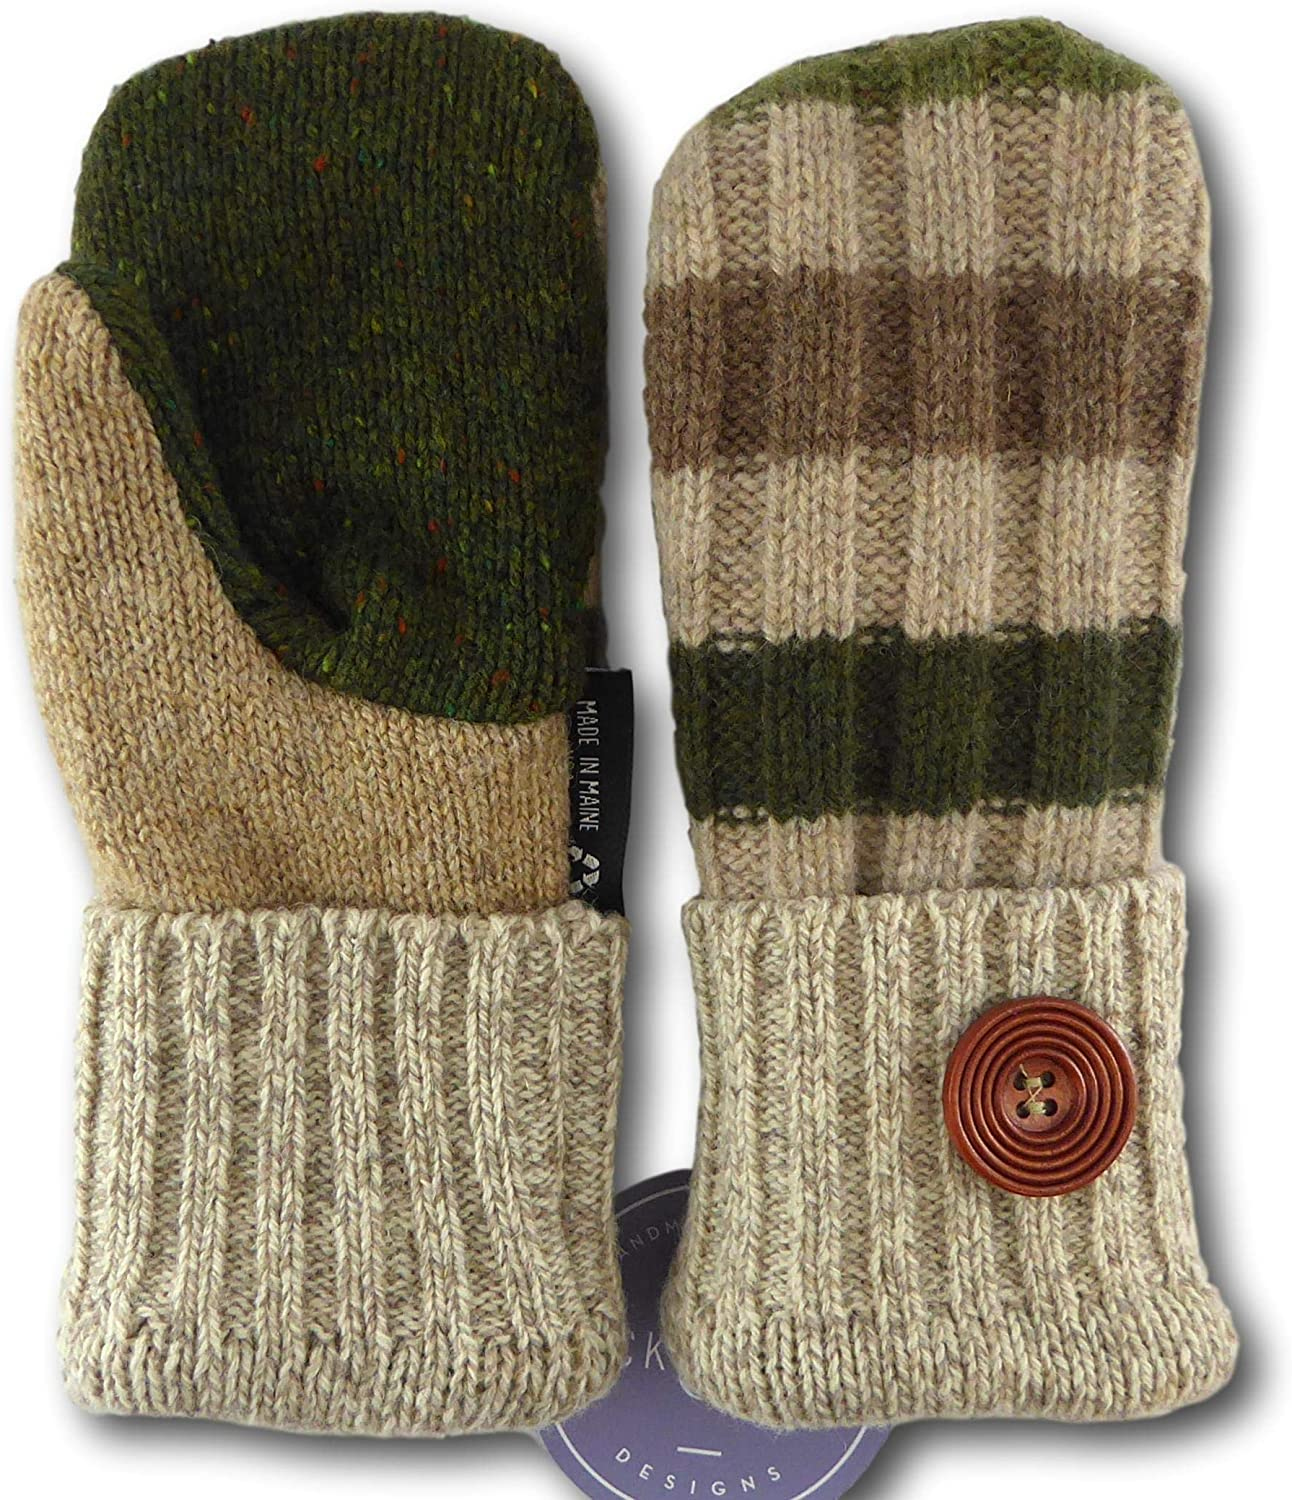 Jack & Mary Designs Handmade Kids Fleece Lined Wool Mittens, Made from Recycled Sweaters in the USA (tangreenbrown, Large)